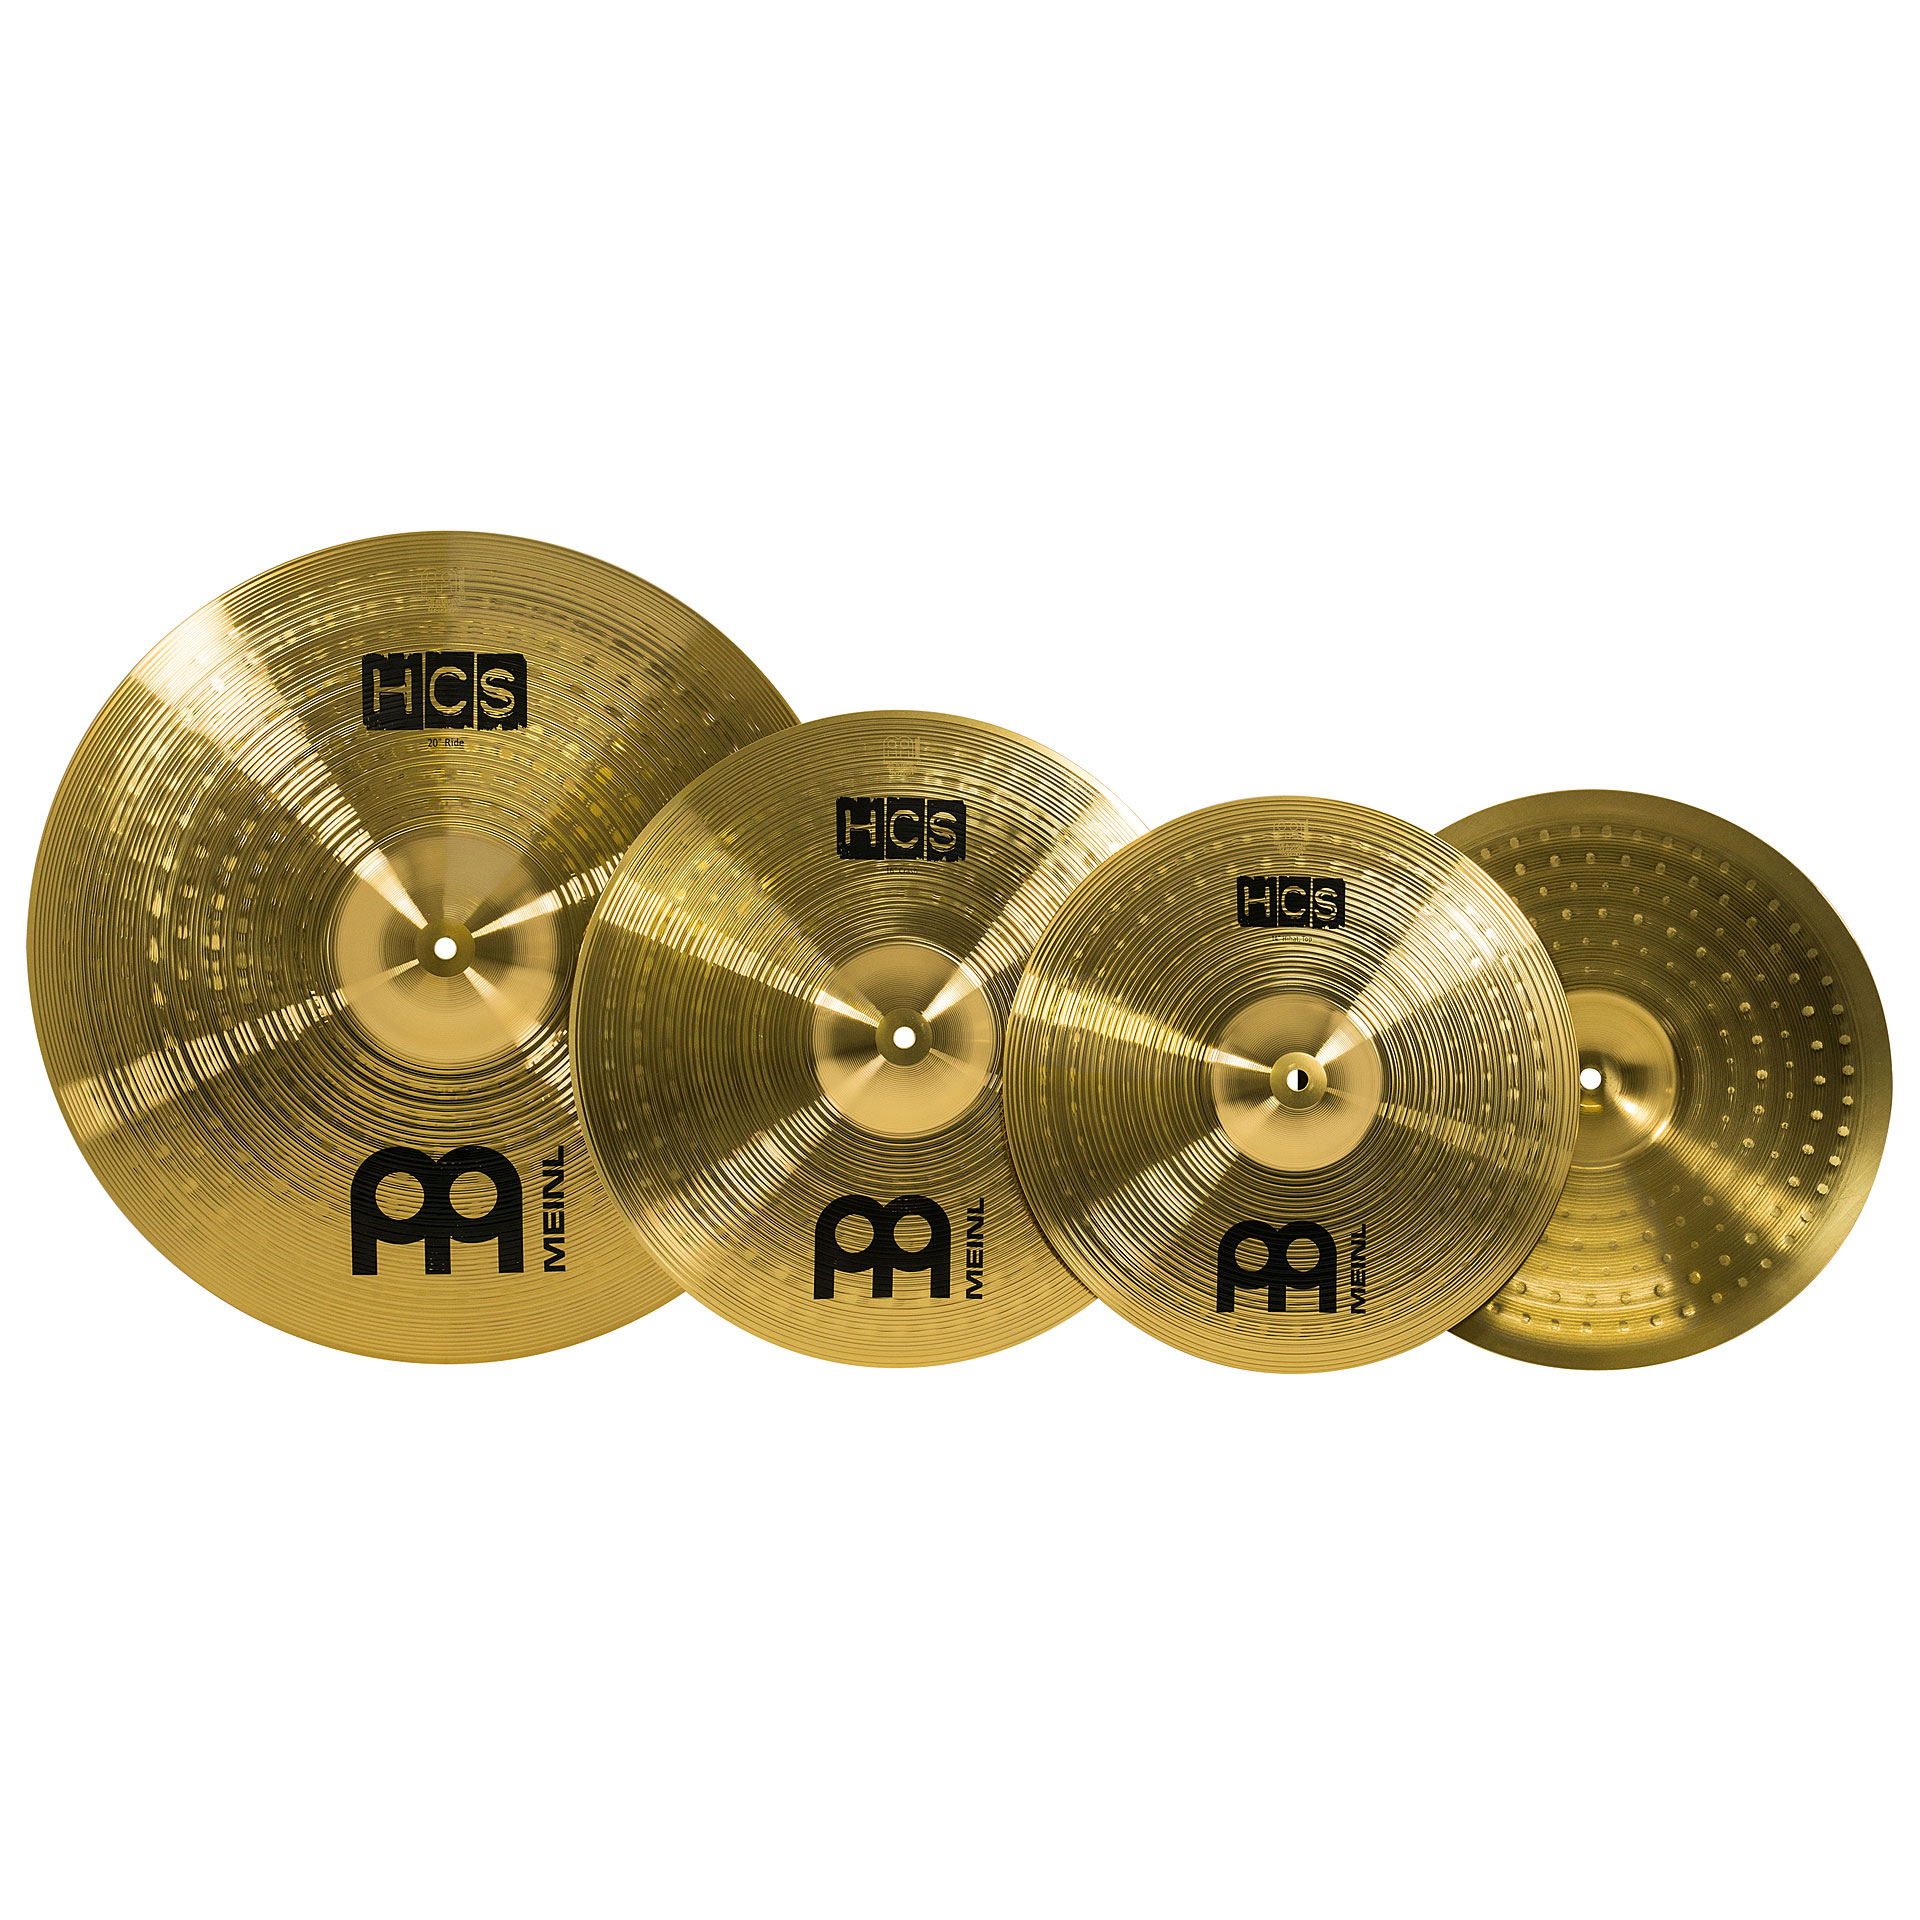 meinl hcs complete cymbal set up 14hh 16cr 20r cymbal set. Black Bedroom Furniture Sets. Home Design Ideas